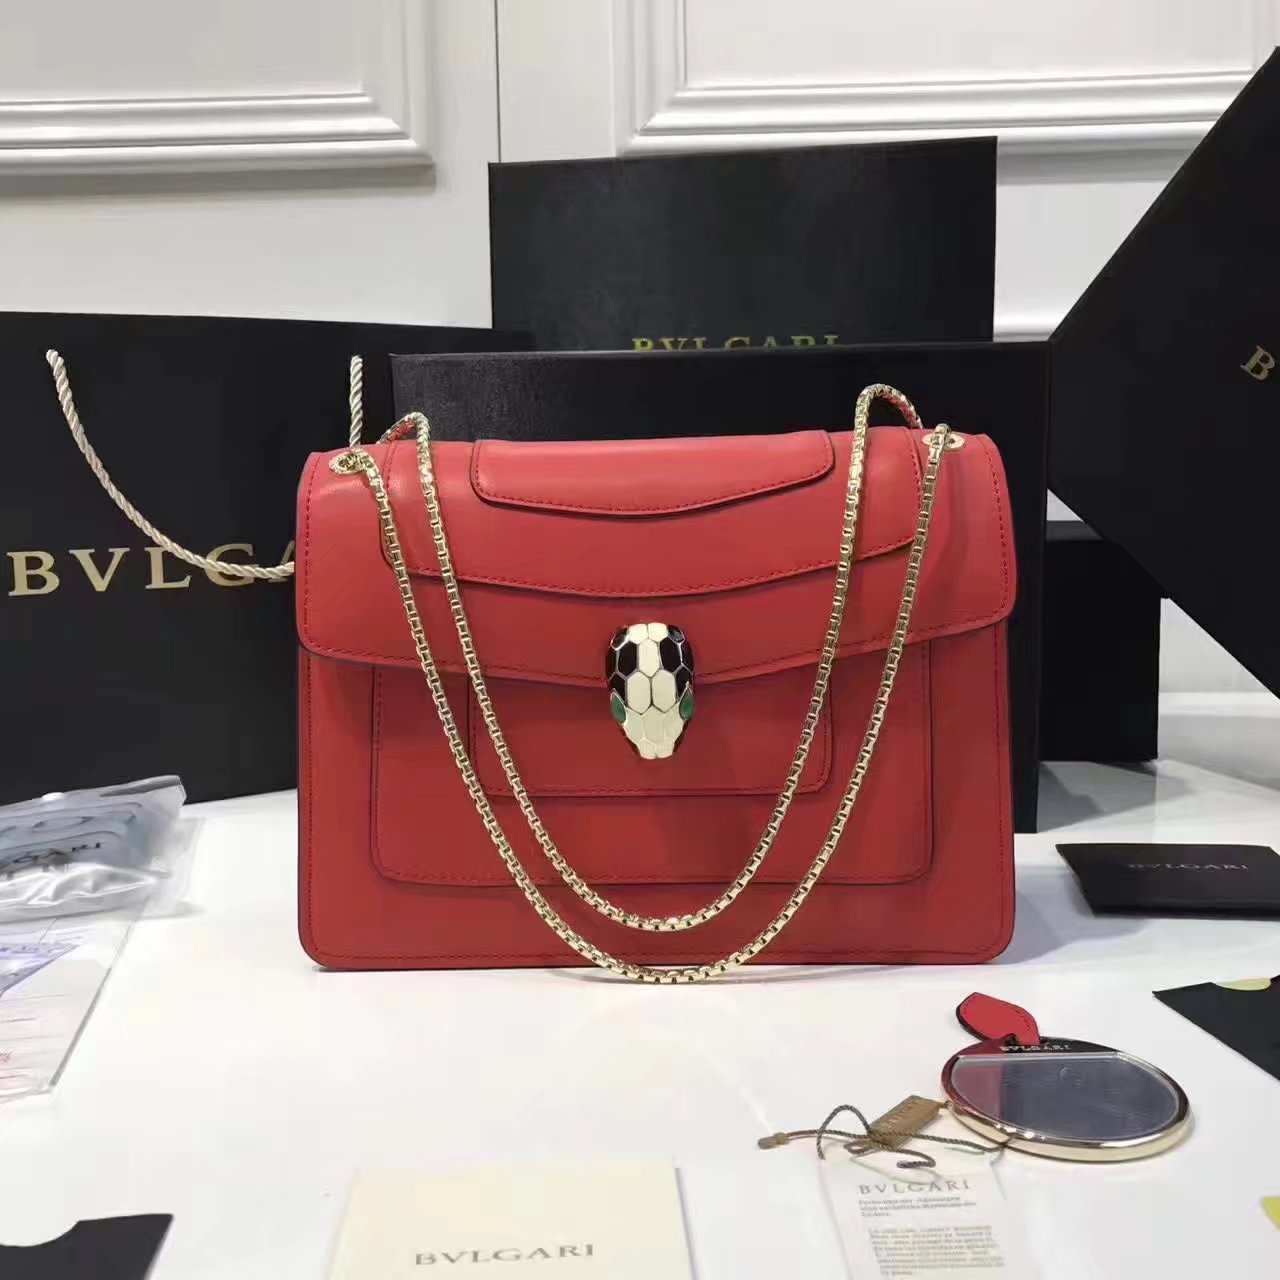 Bulgari Serpenti Forever Flap Cover Chain Shoulder Bag Red With Malachite Eyes